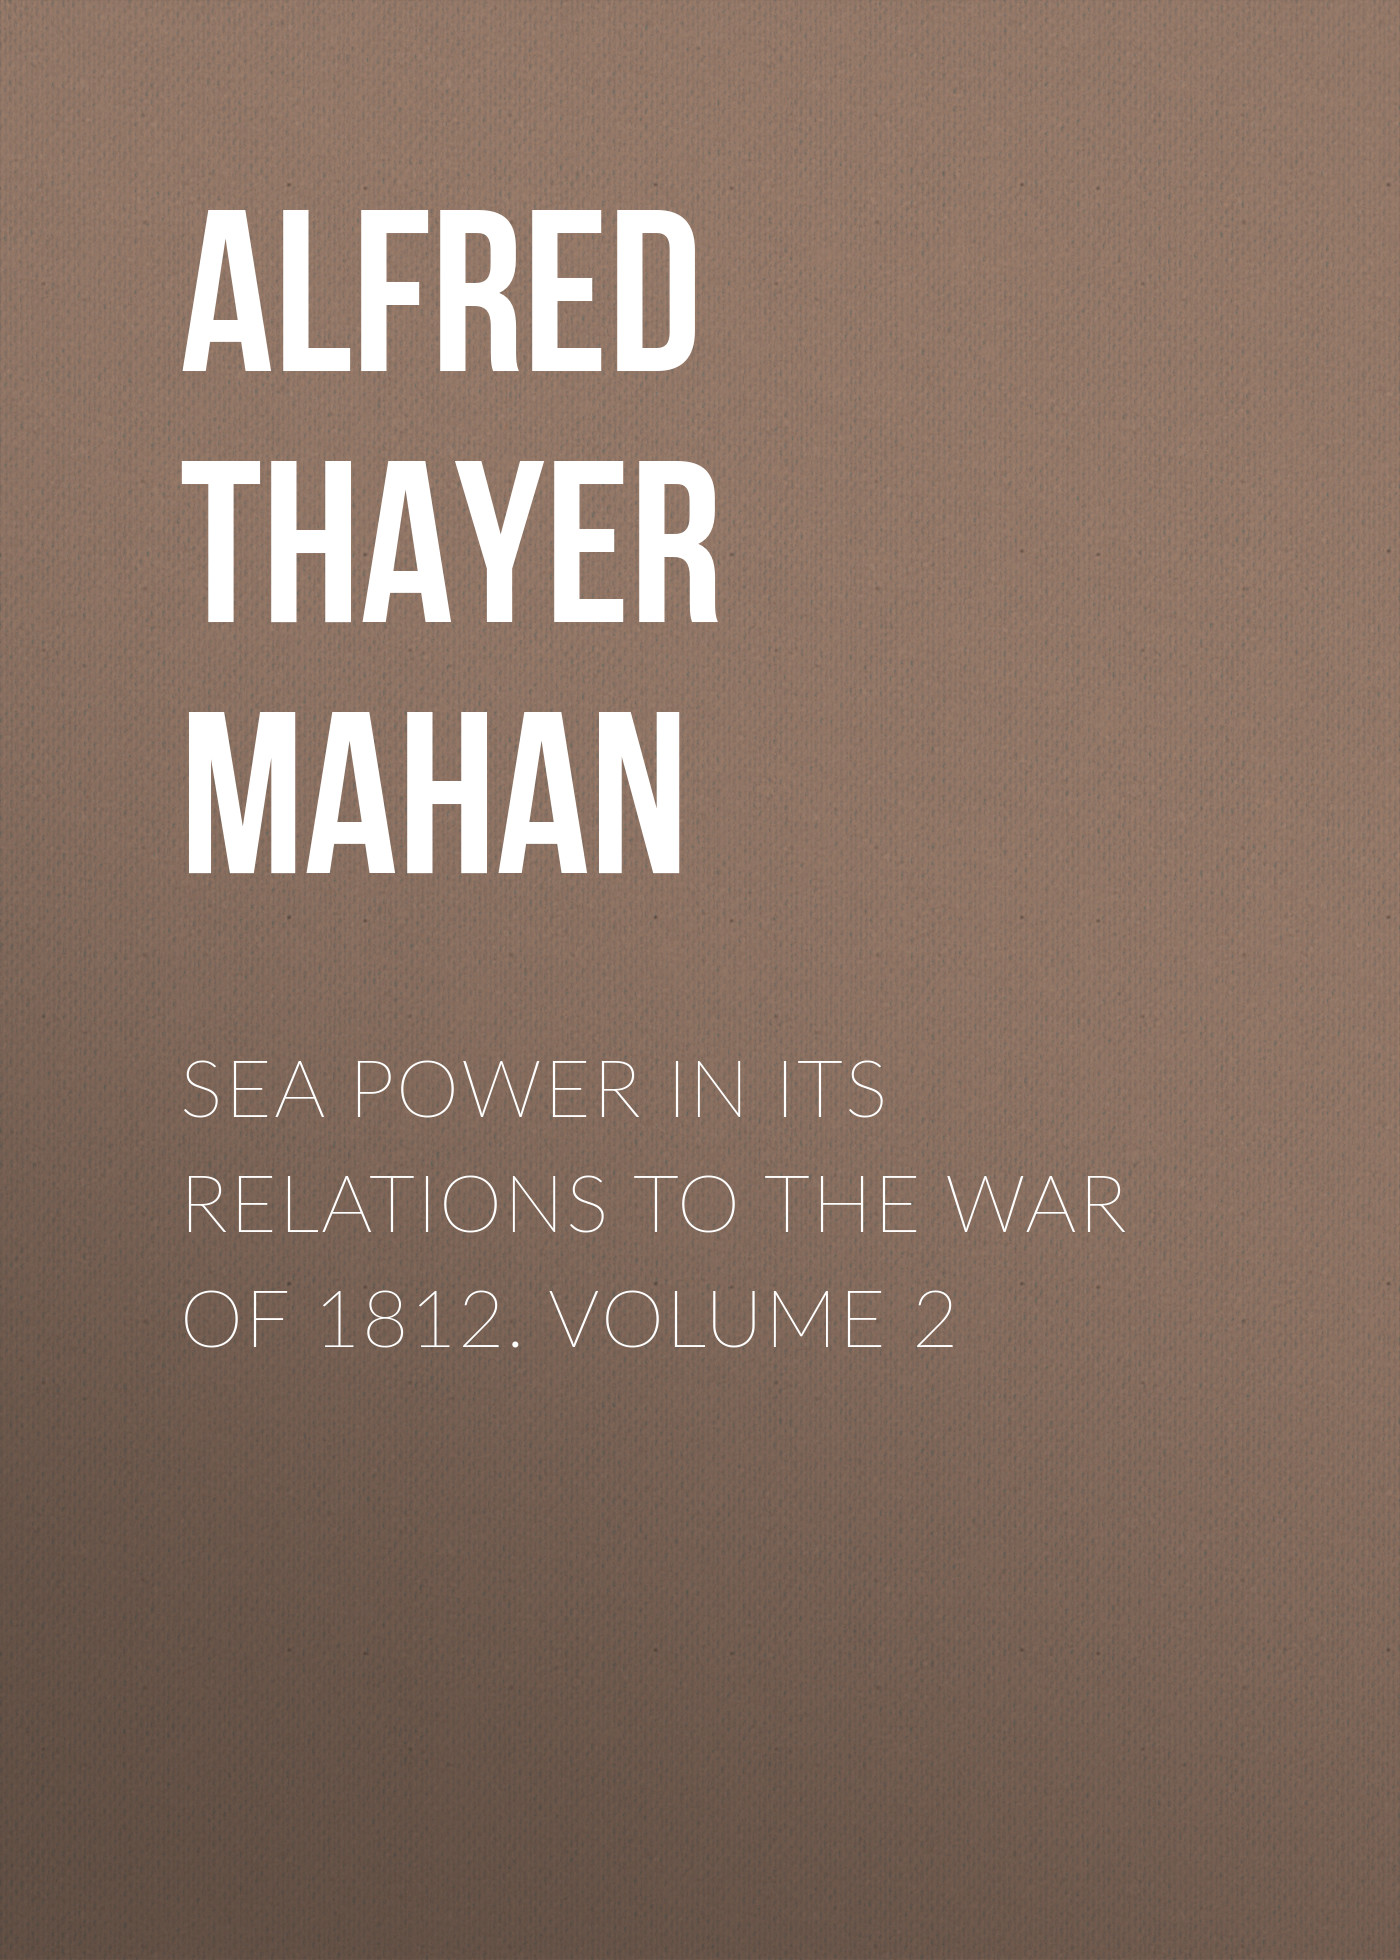 Alfred Thayer Mahan Sea Power in its Relations to the War of 1812. Volume 2 александр дюма the war of women volume 2